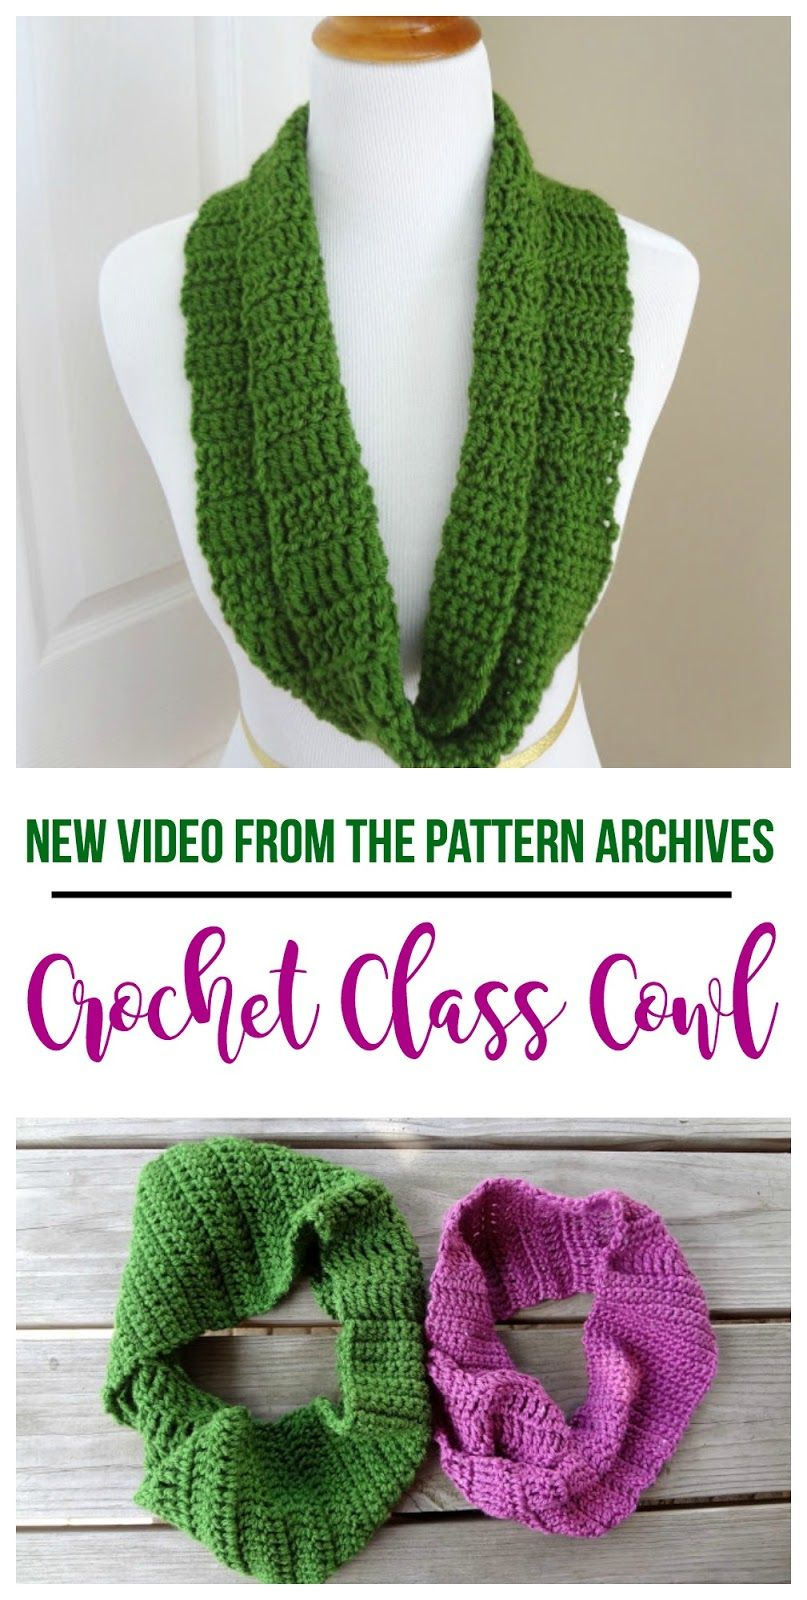 The crochet class cowl has been around for a while but there is new video tutorial from the fiber flux pattern archives crochet class cowl bankloansurffo Images